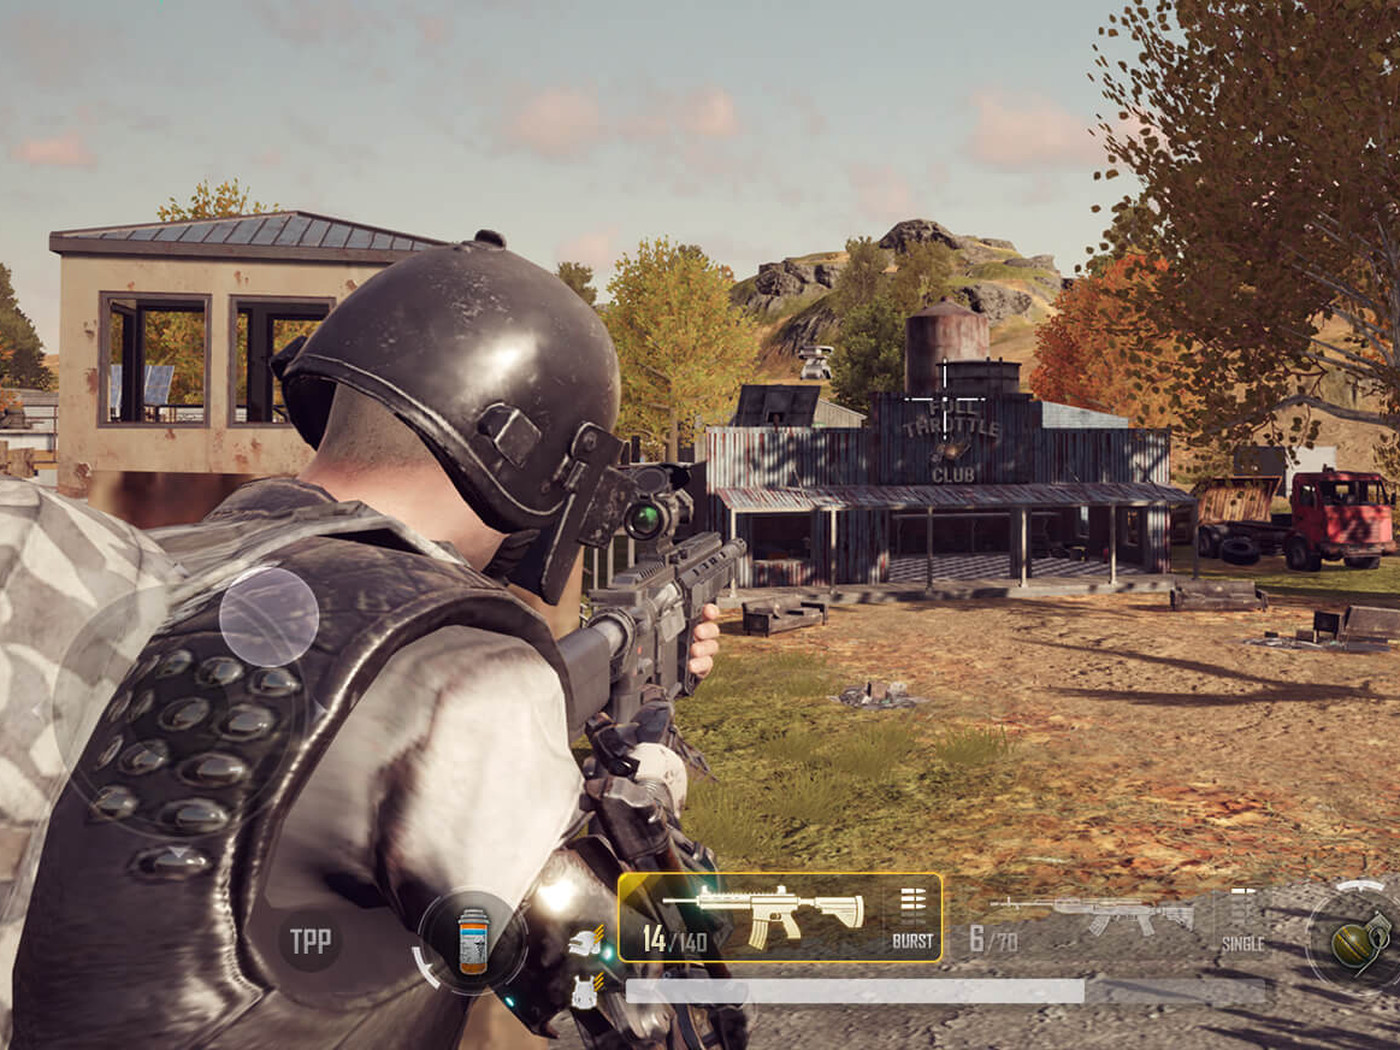 PUBG New State is a futuristic mobile battle royale   Polygon 1400x1050